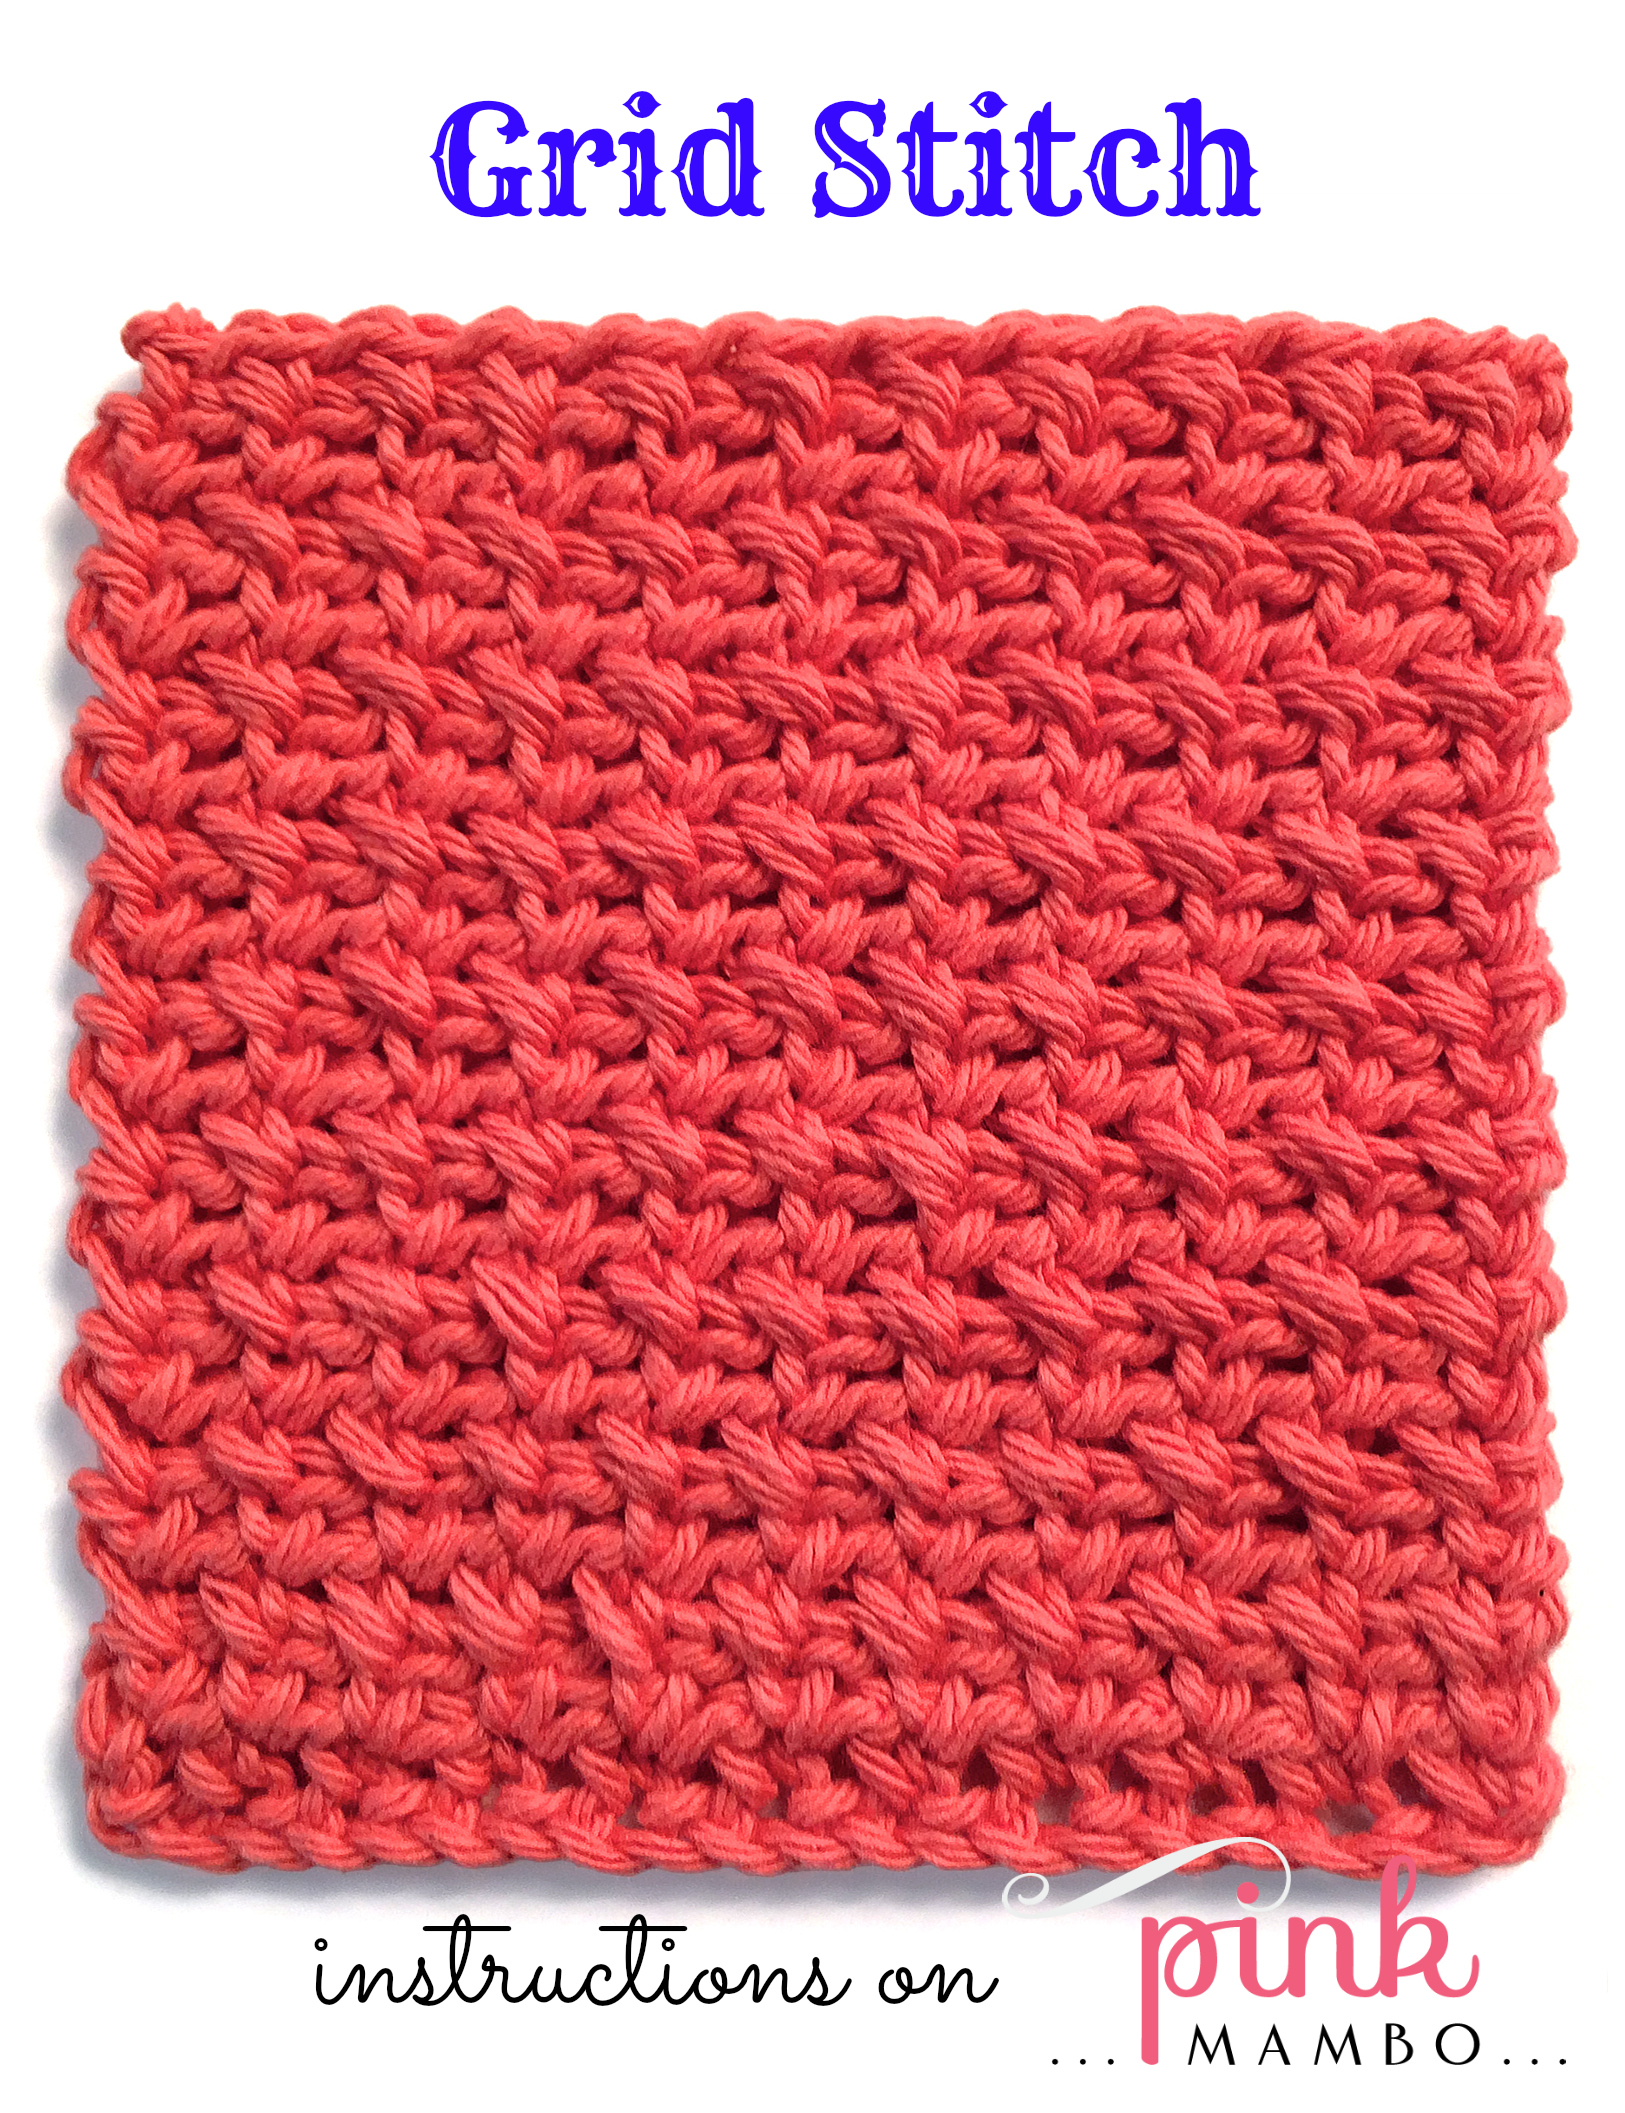 Crochet Stitches And Names : this is one of my favorite stitch patterns it has great drape and